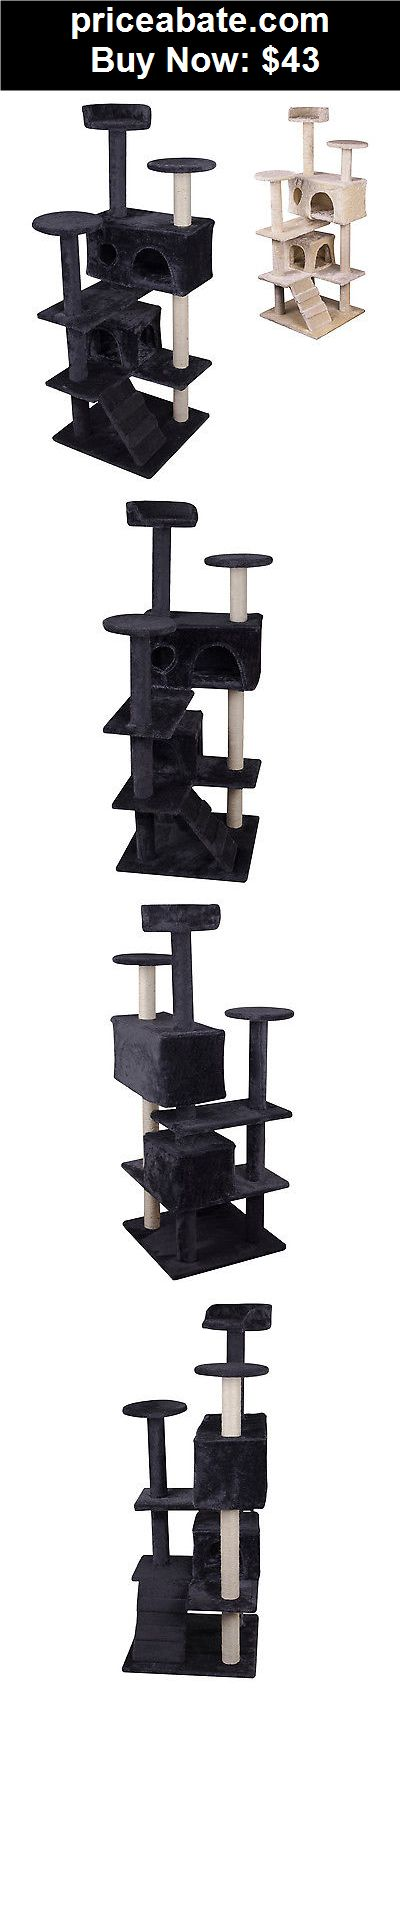 "Animals-Cats: New 51"" Cat Tree Condo Furniture Scratcher Post Play Toy Pet House Kitten Tower  - BUY IT NOW ONLY $43"